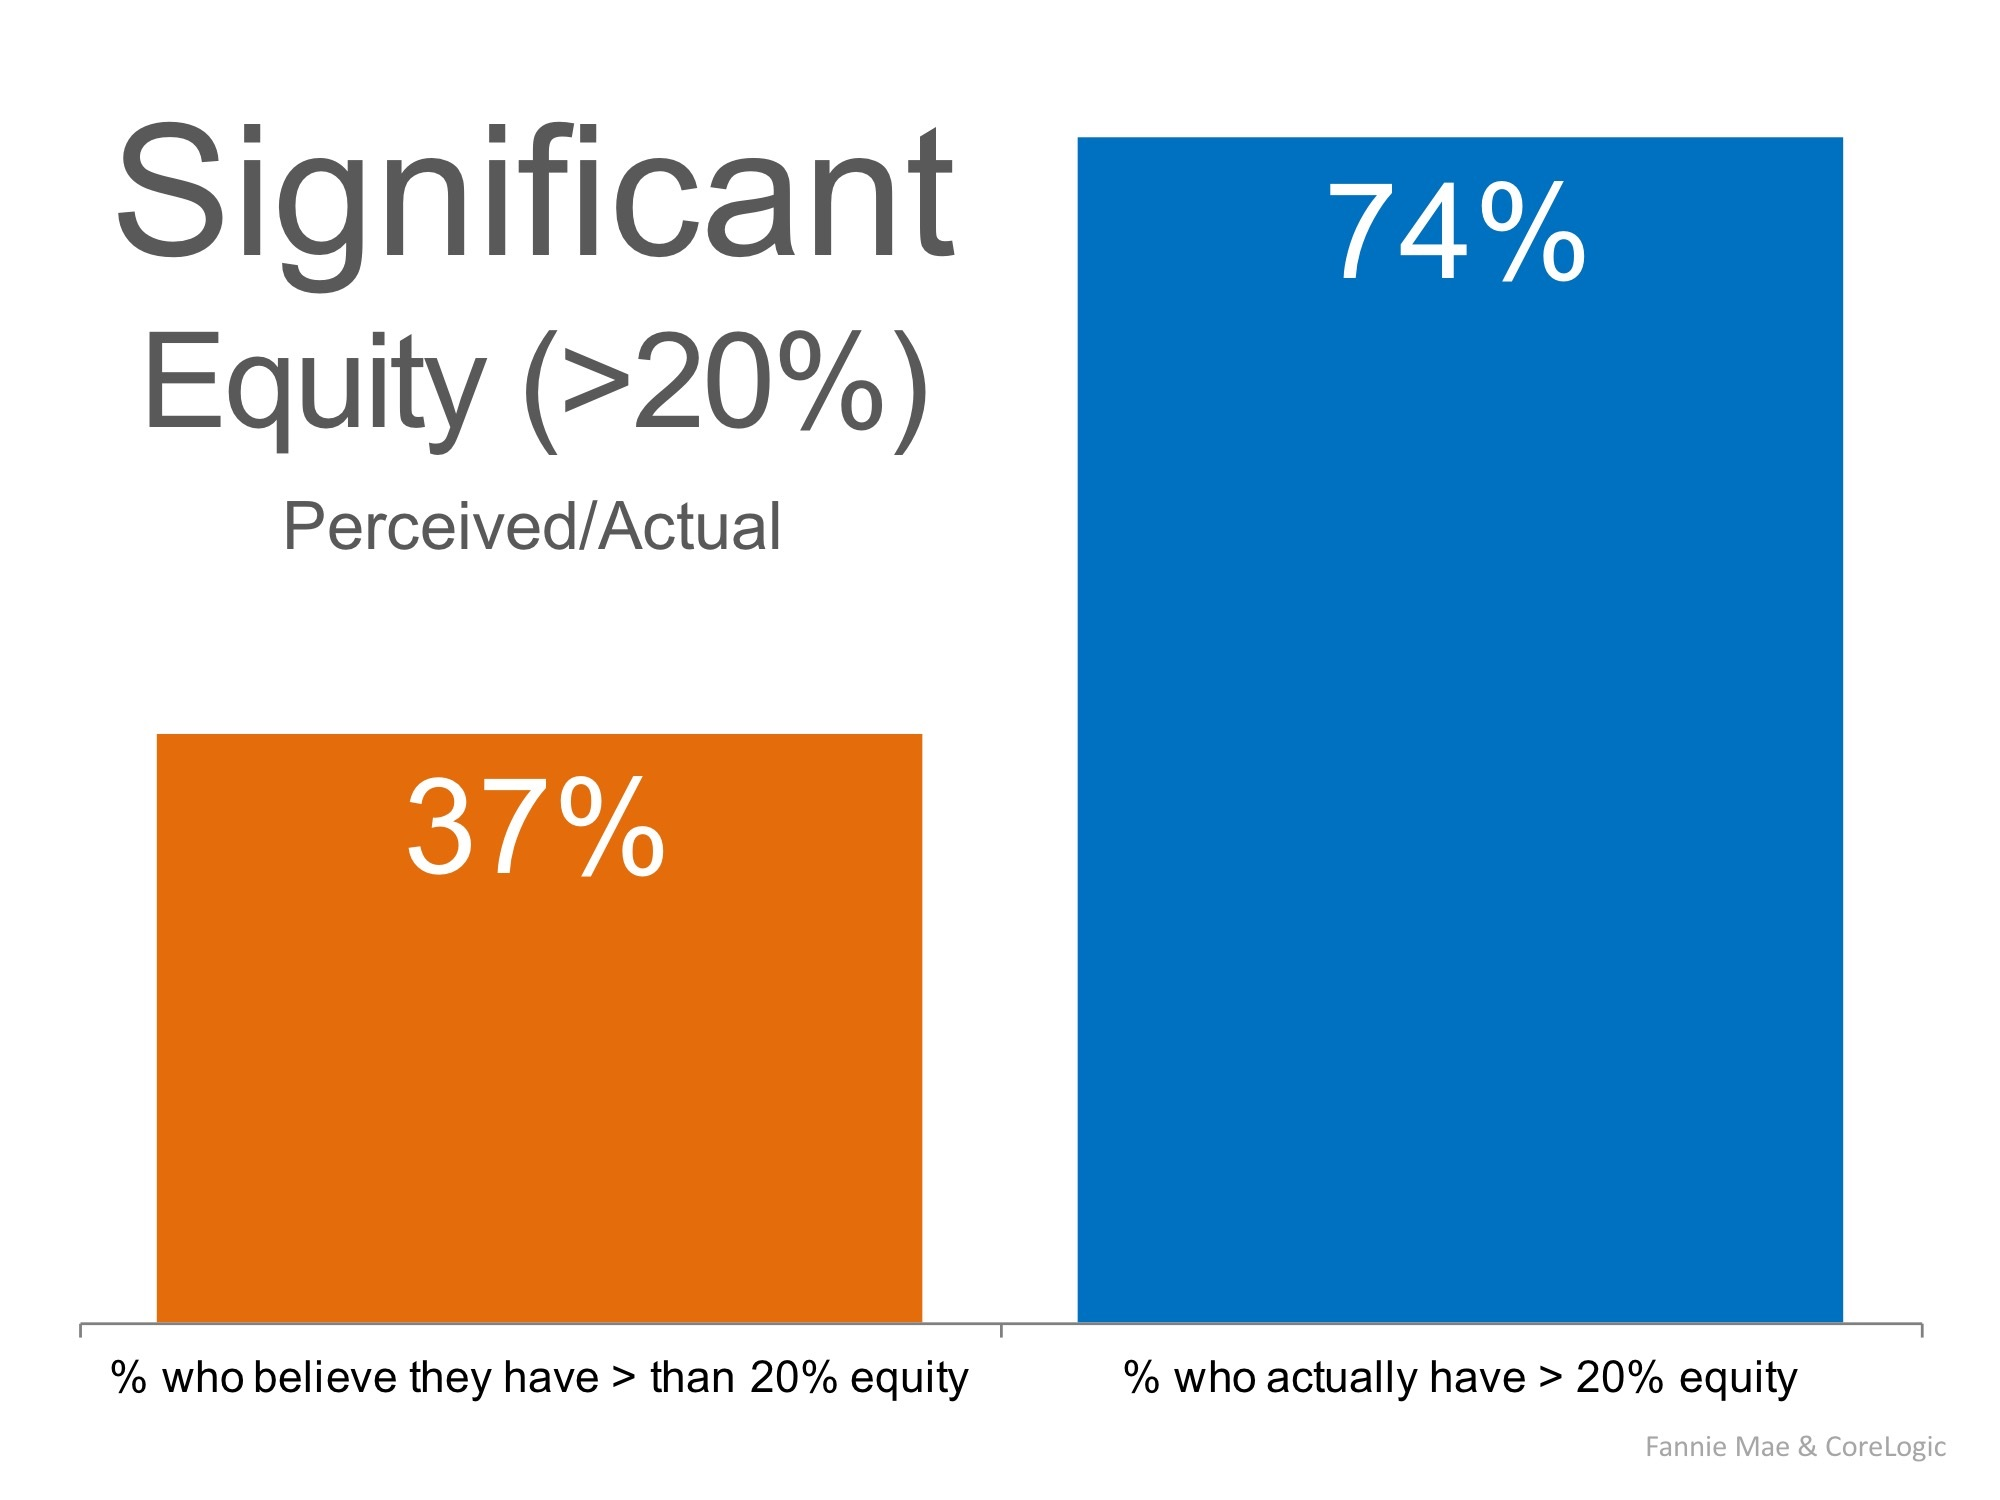 Significant-Equity-STM